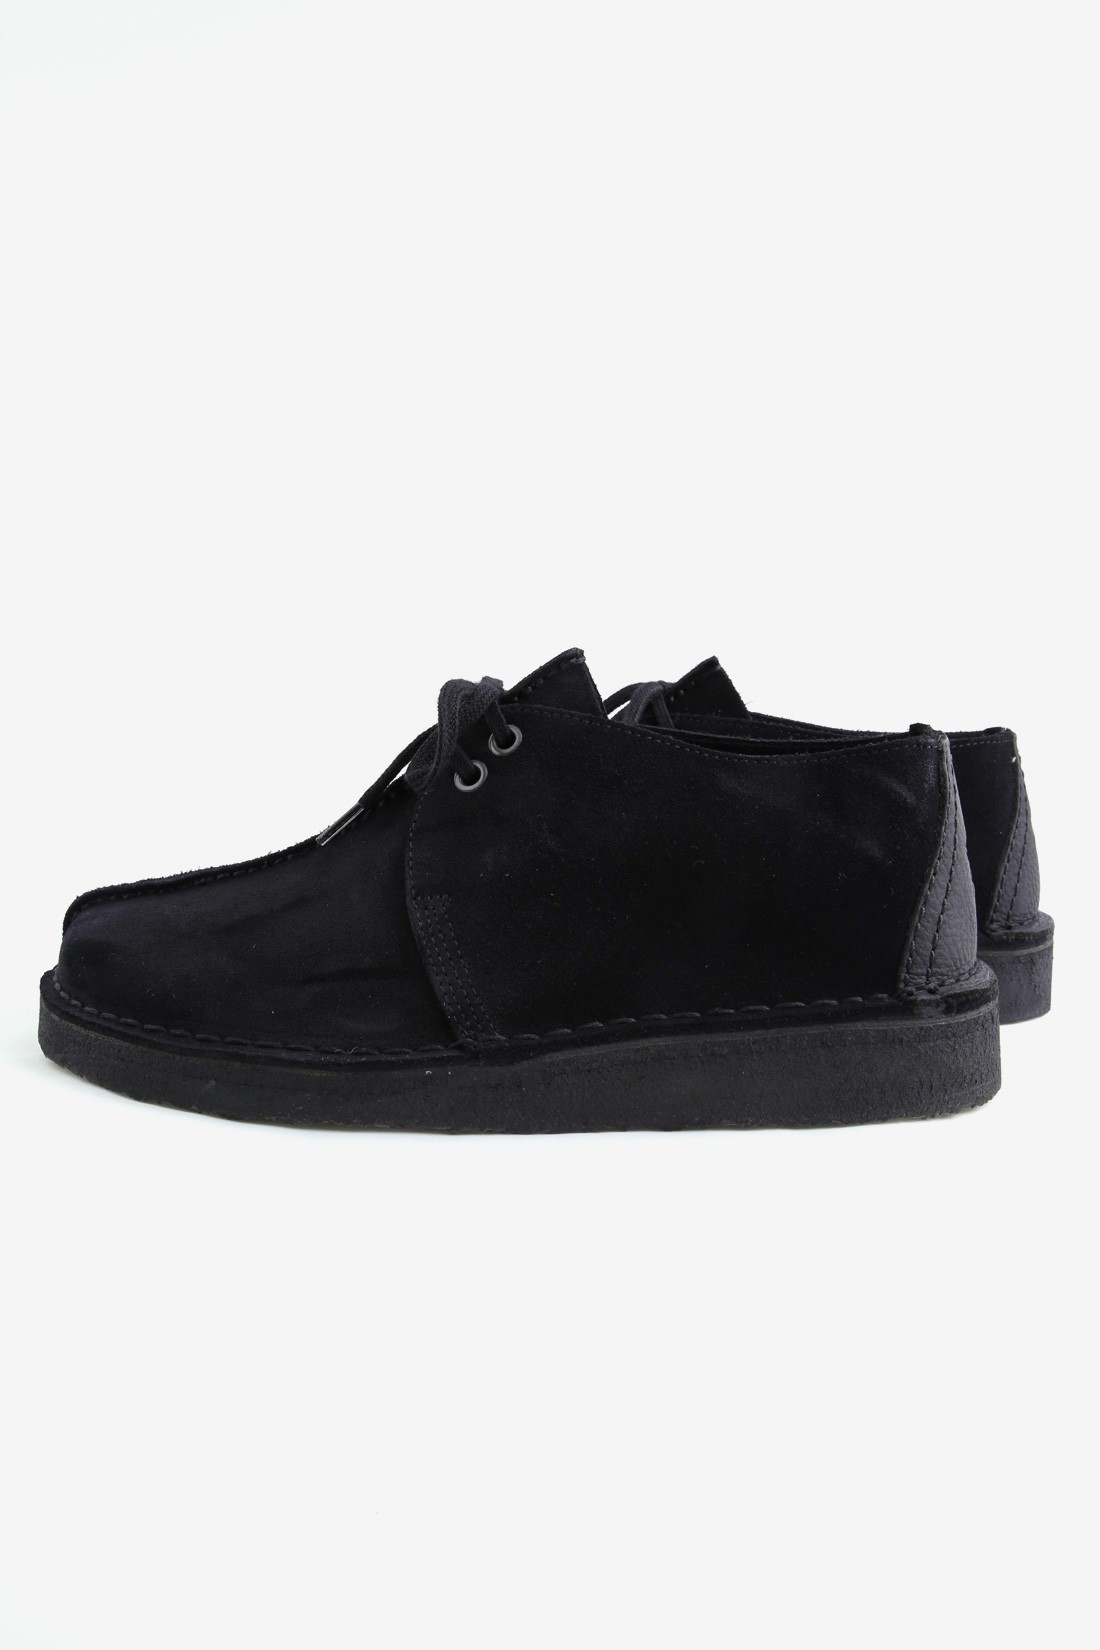 CLARKS ORIGINALS / Desert trek Black suede